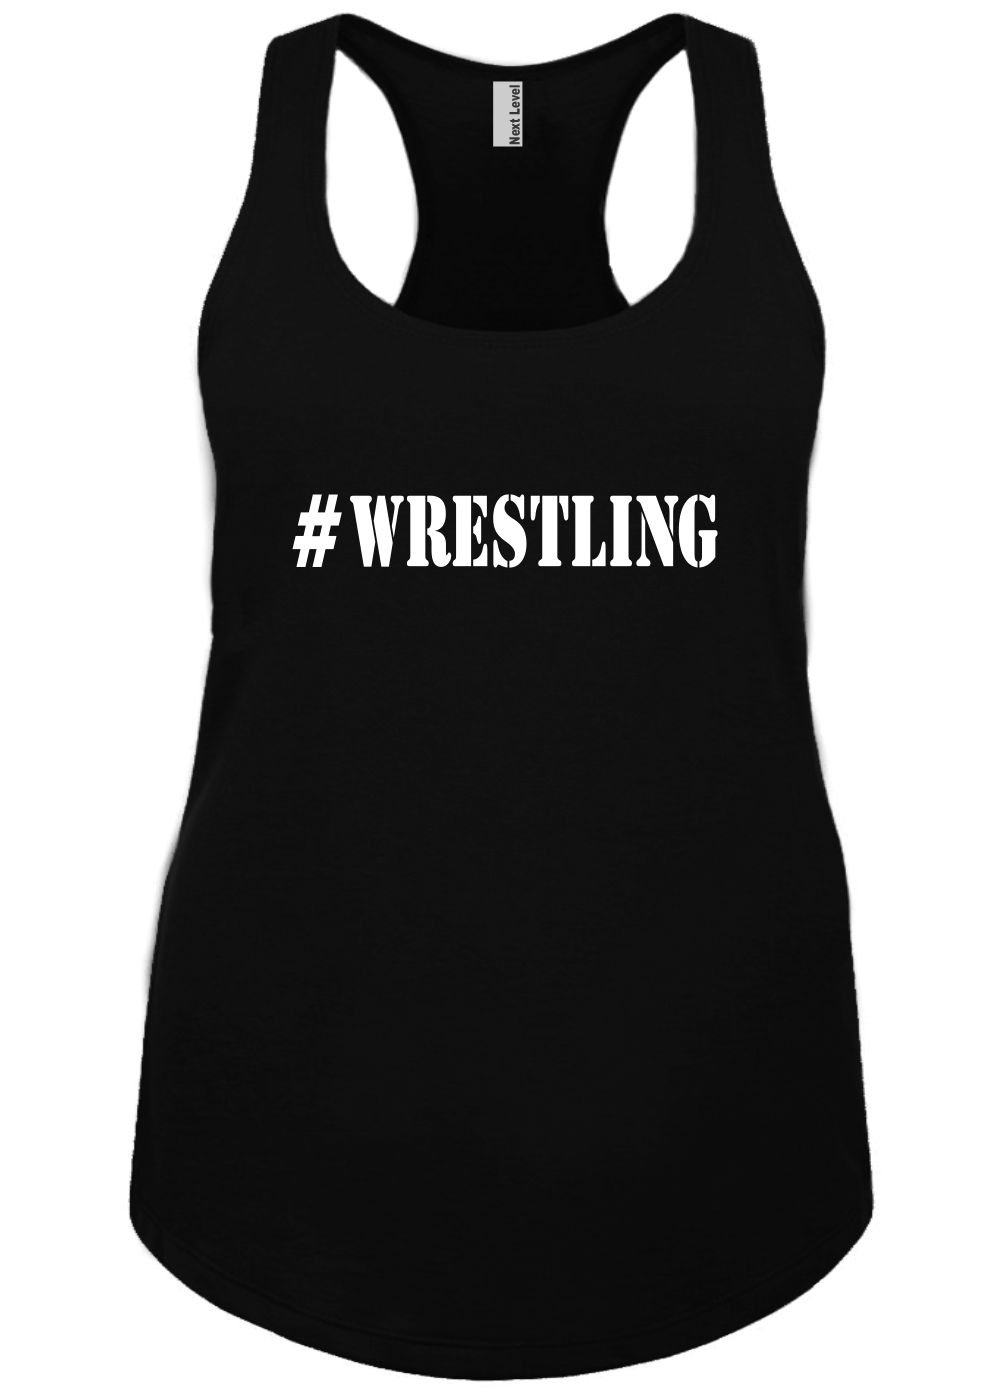 Mighty Ambitious Ladies Funny Tank Top #wrestling (Hashtag) Caps 2X